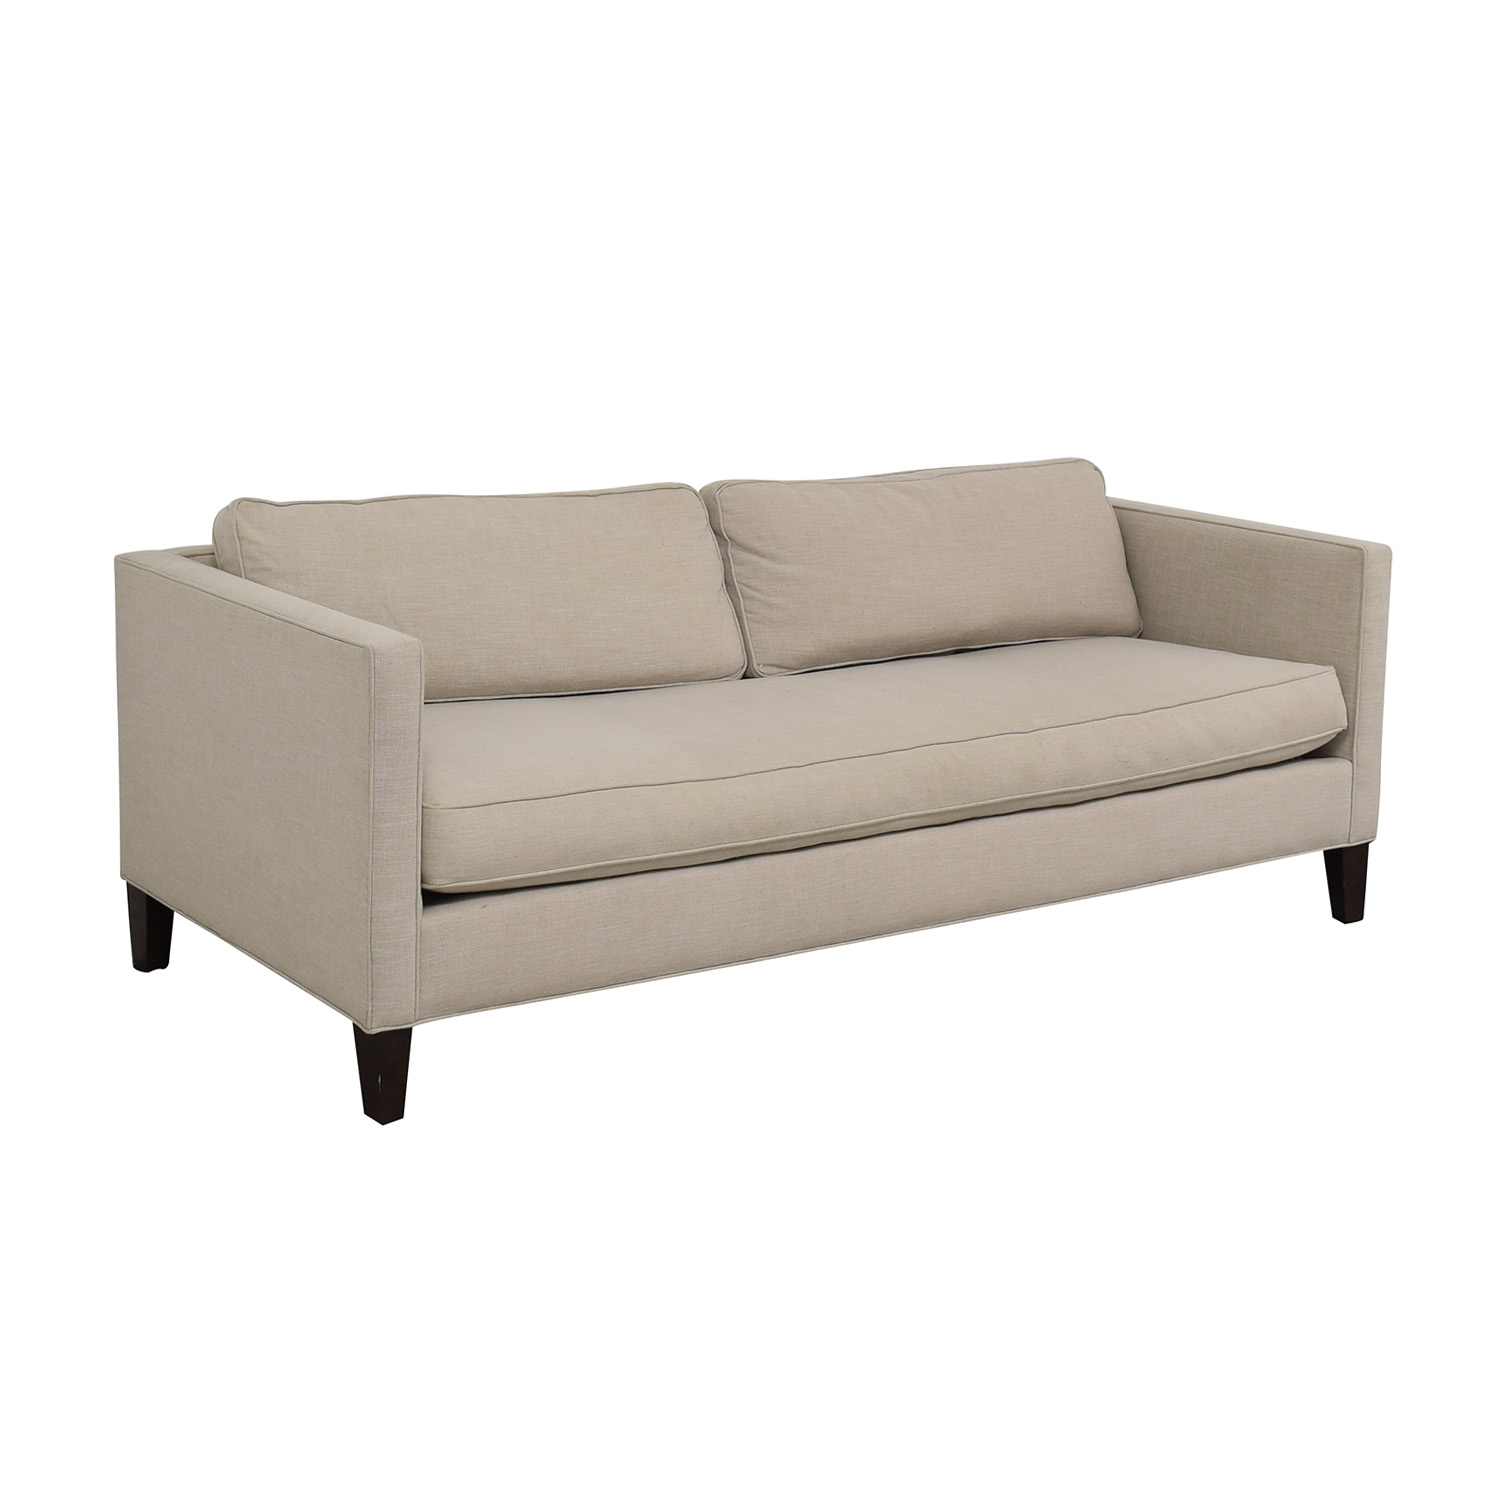 dunham sofa inclinable cuir 75 off west elm linen weave natural single buy cushion classic sofas